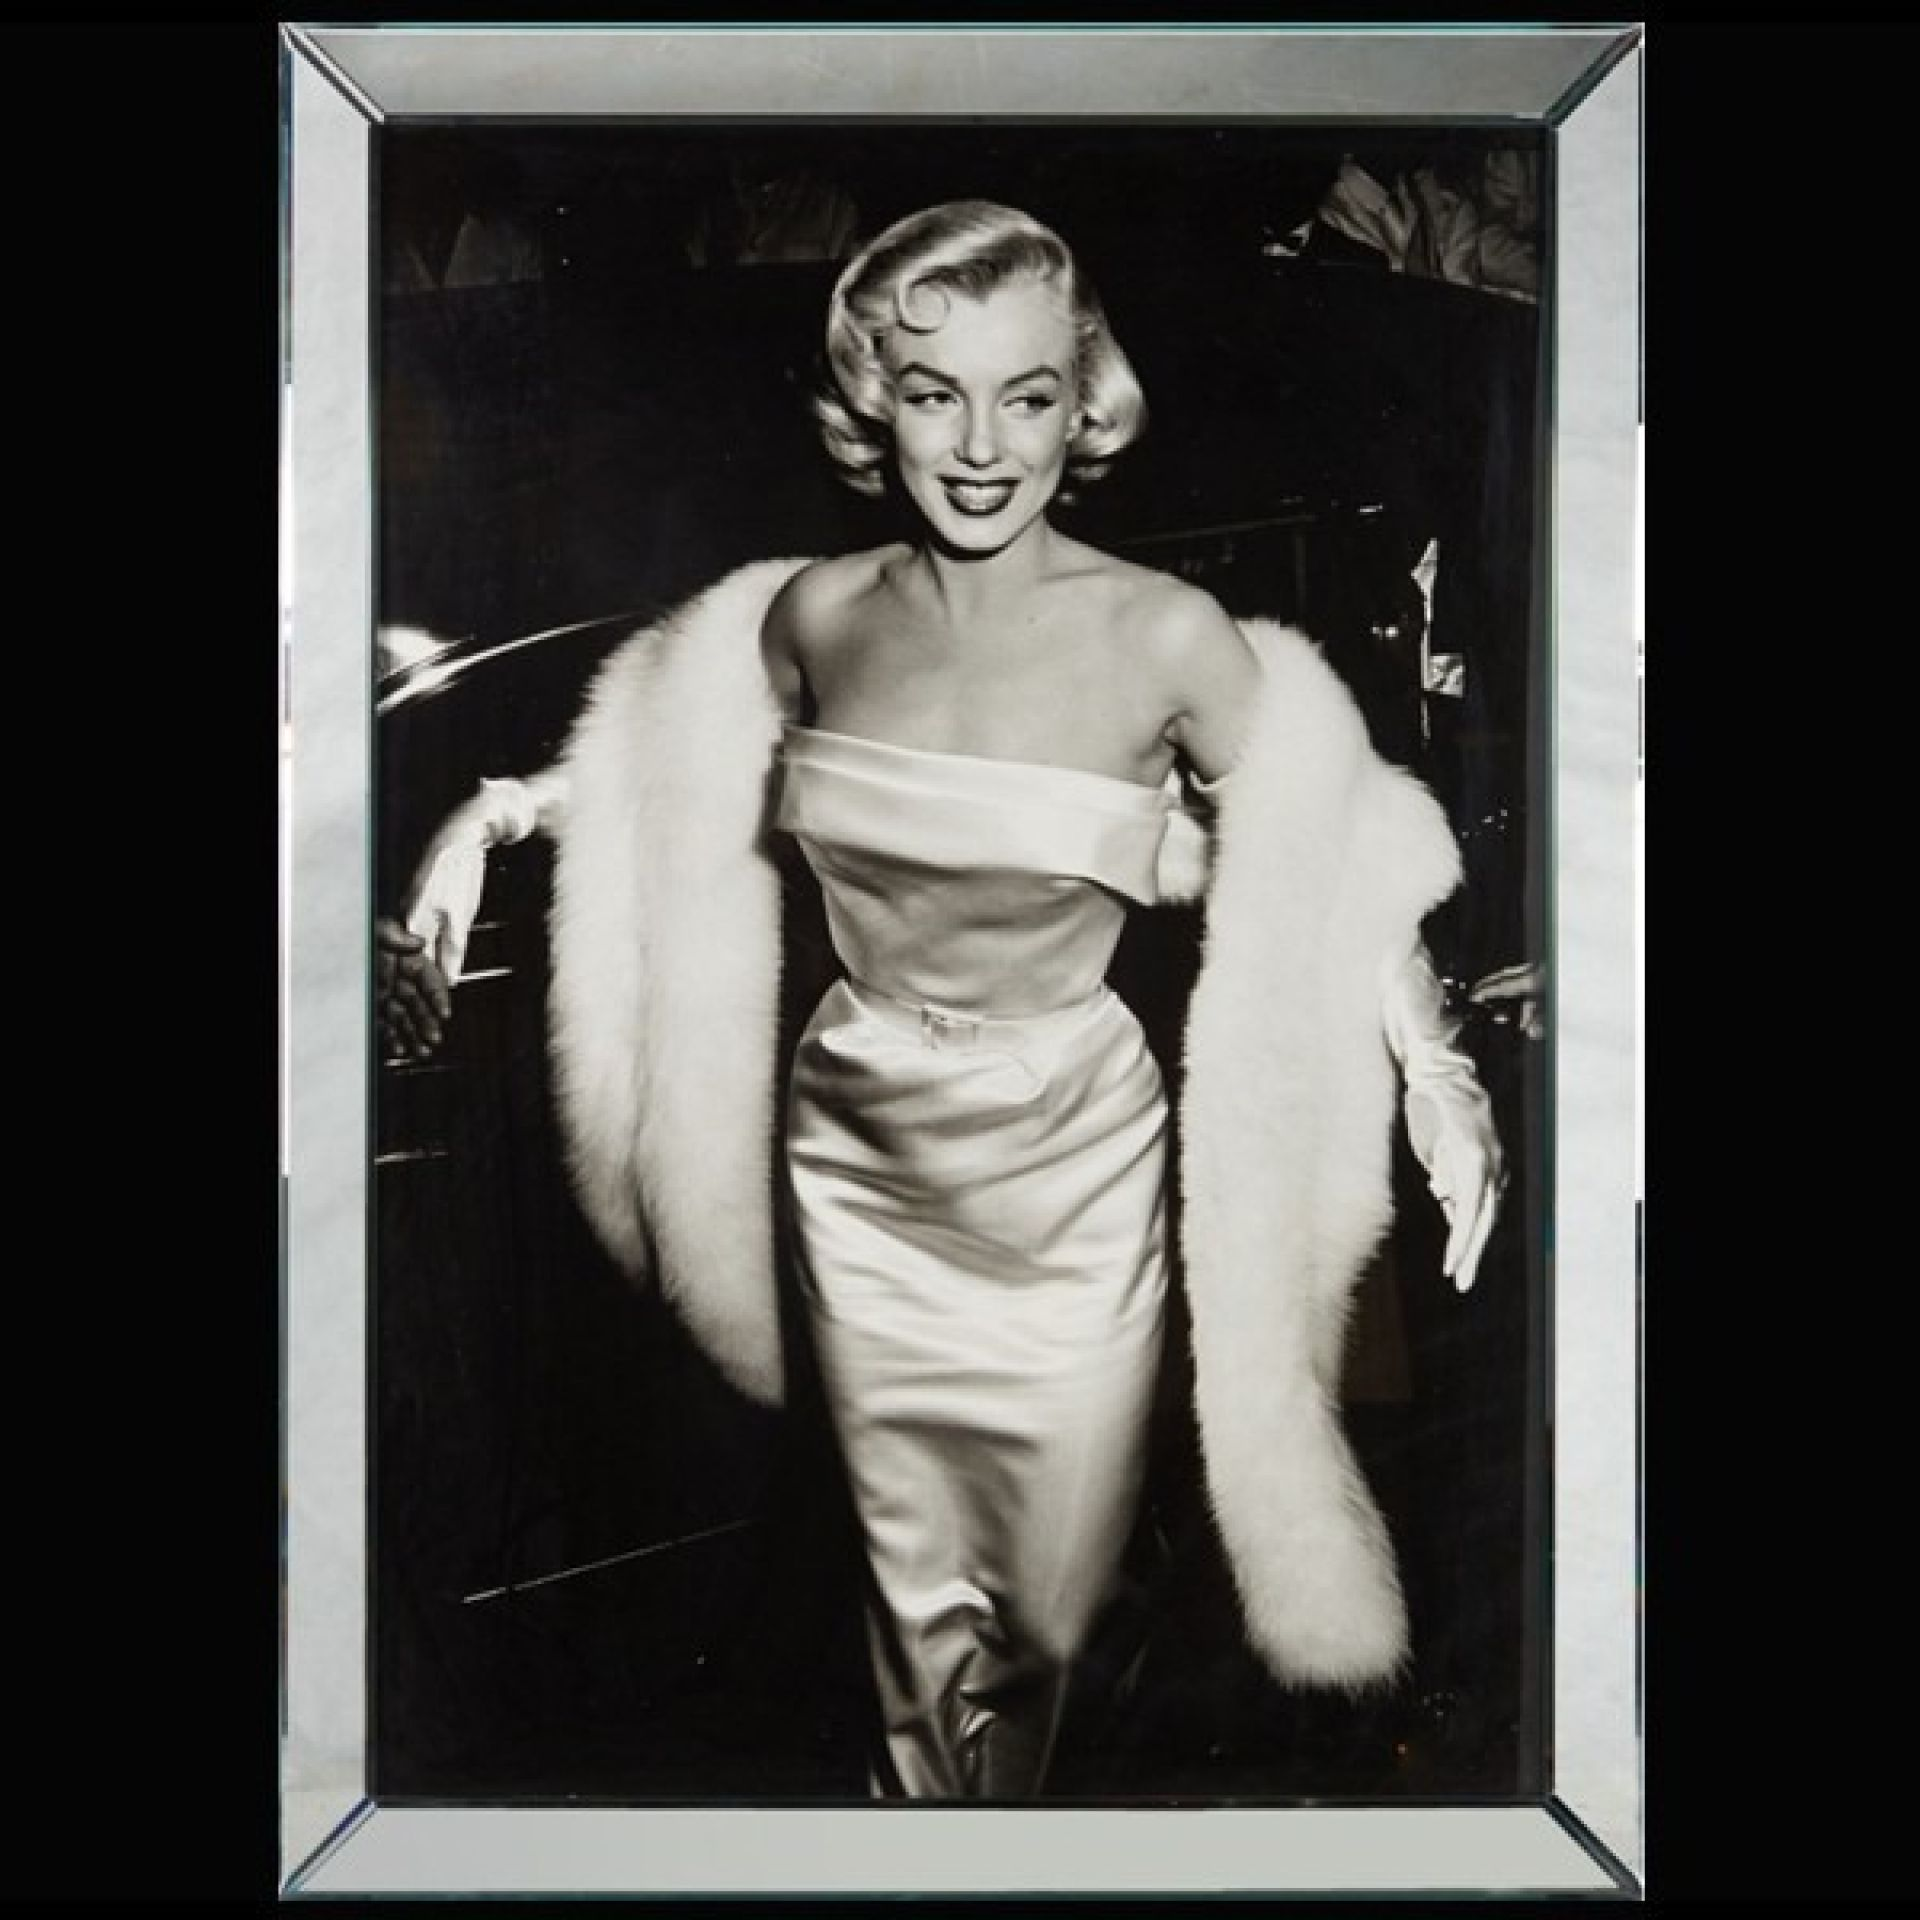 BLACK AND WHITE PHOTOGRAPHY MIRROR FRAME PC-MARYLIN MONROE